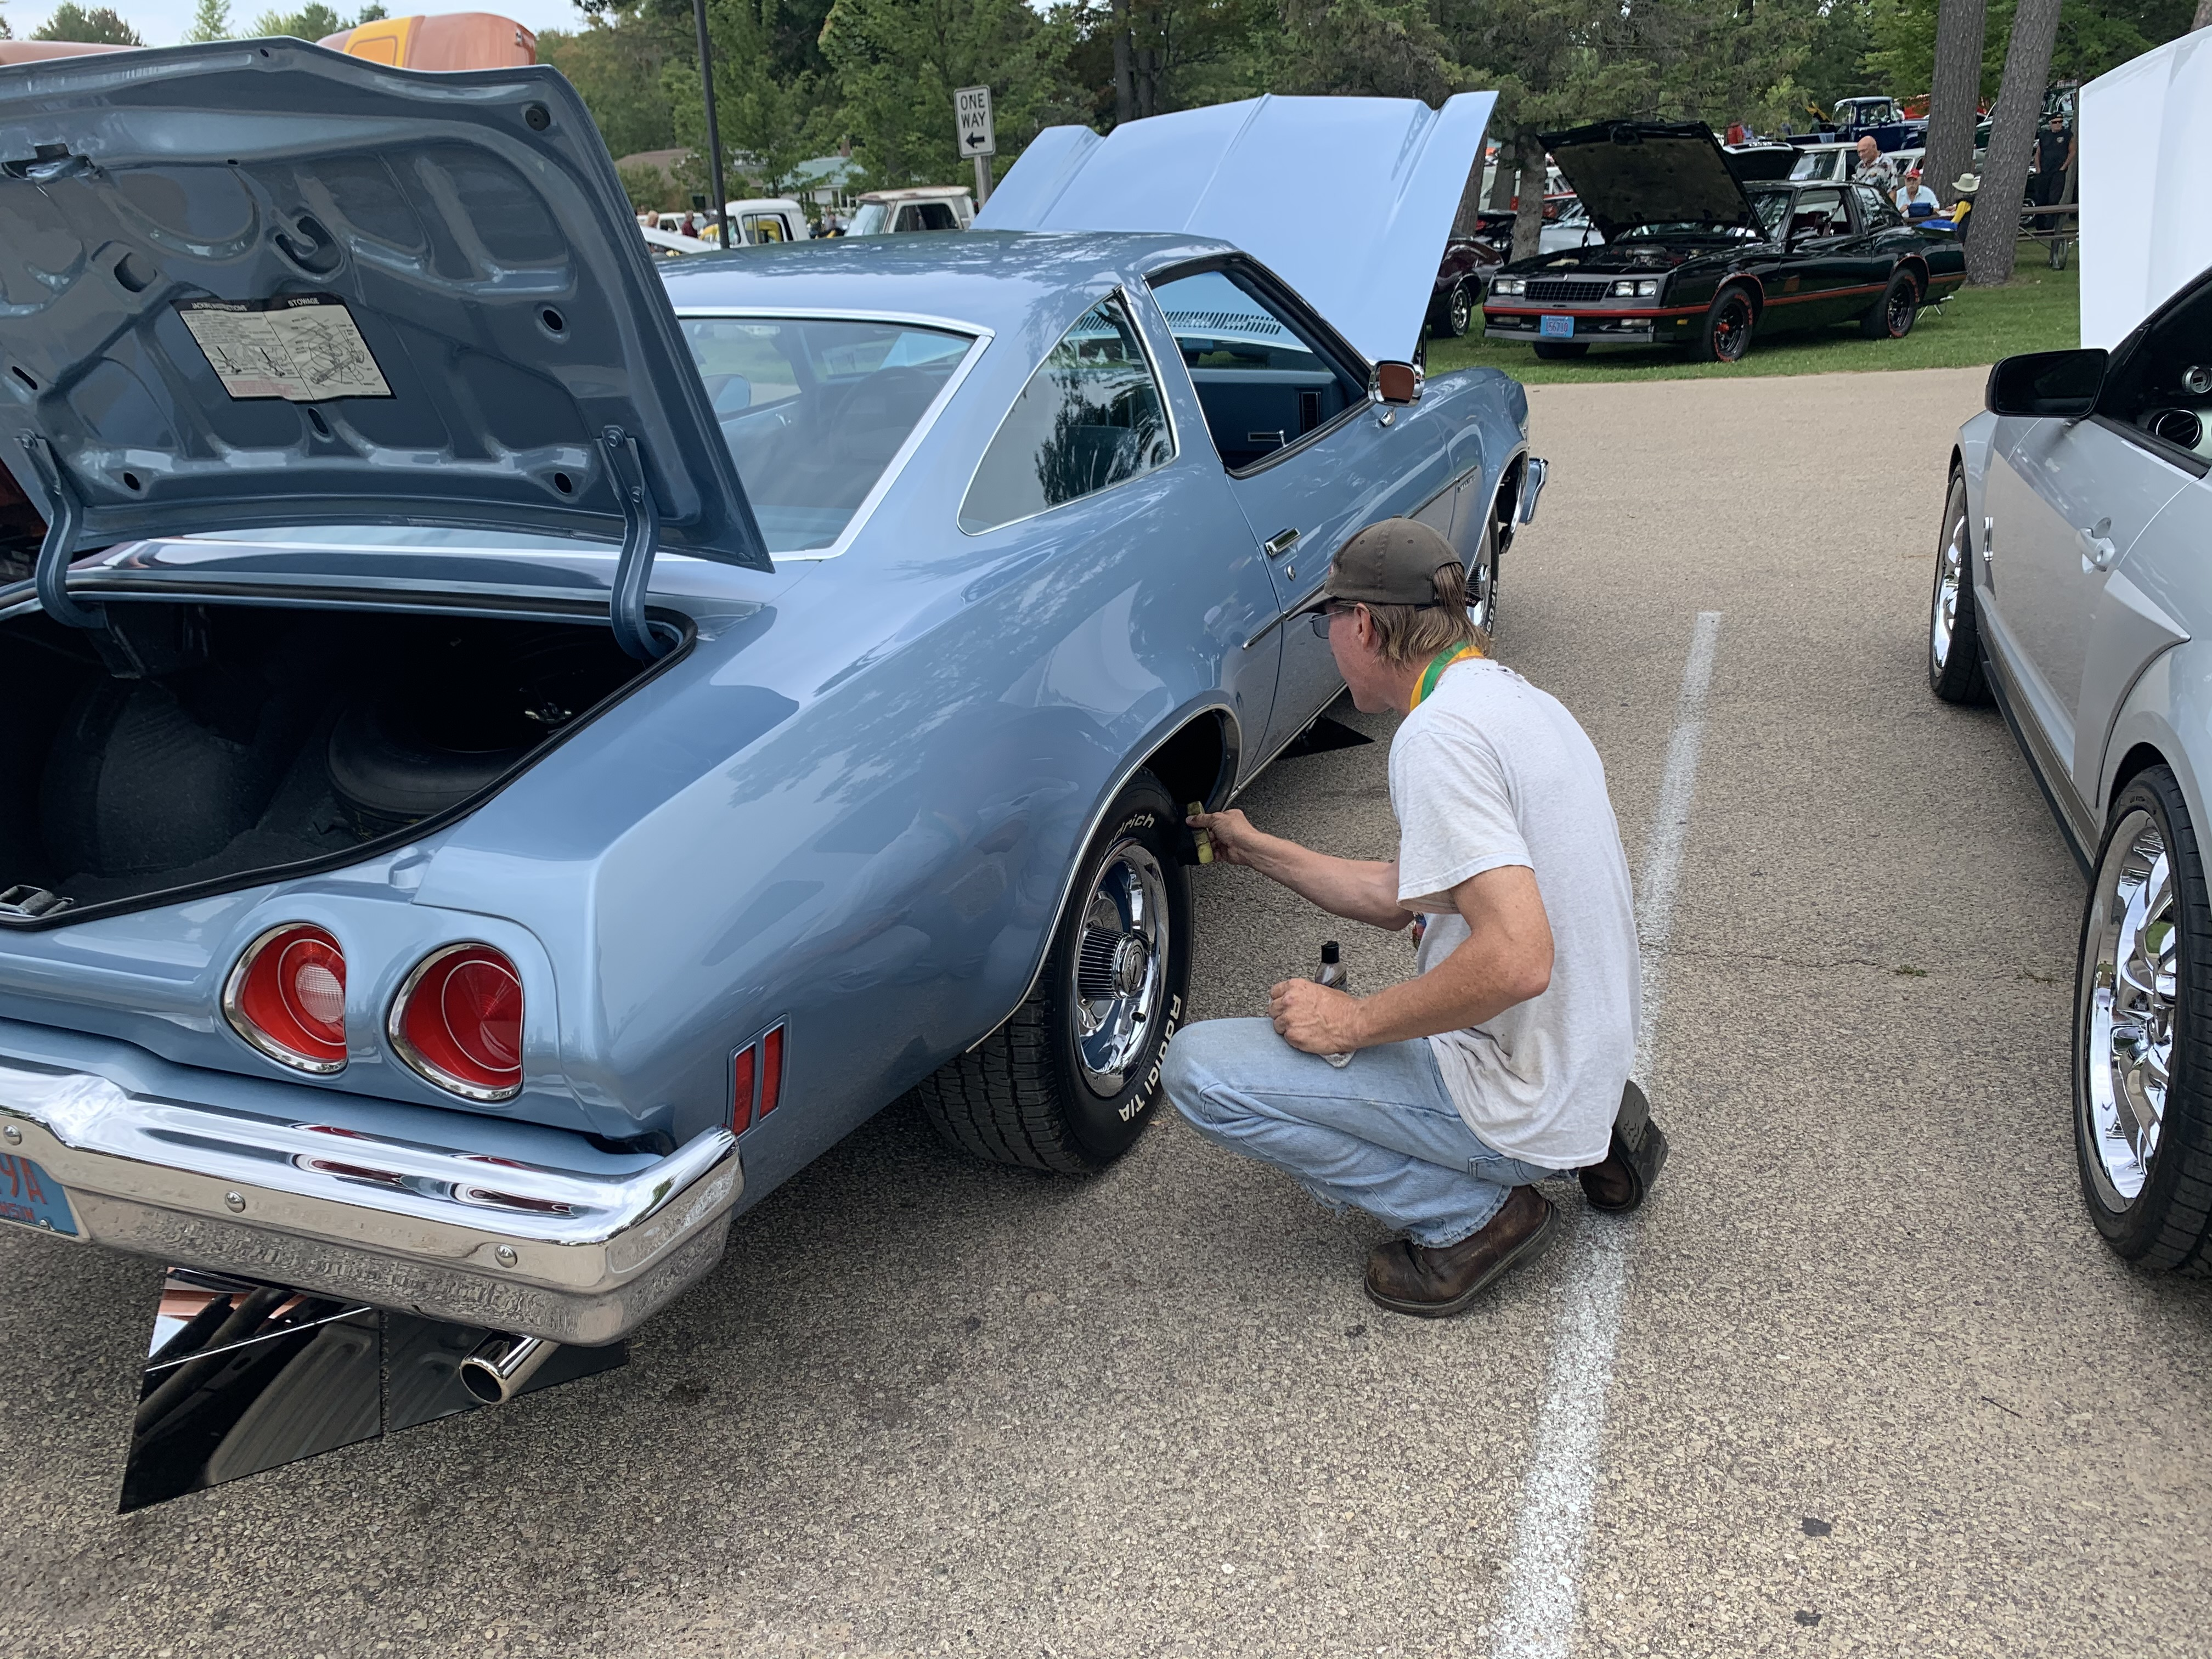 Oshkosh resident Jim Hibbert cleans his tires as a last-minute spruce-up during the car show at Shawano Lake County Park on Sept. 12.Luke Reimer | NEW Media